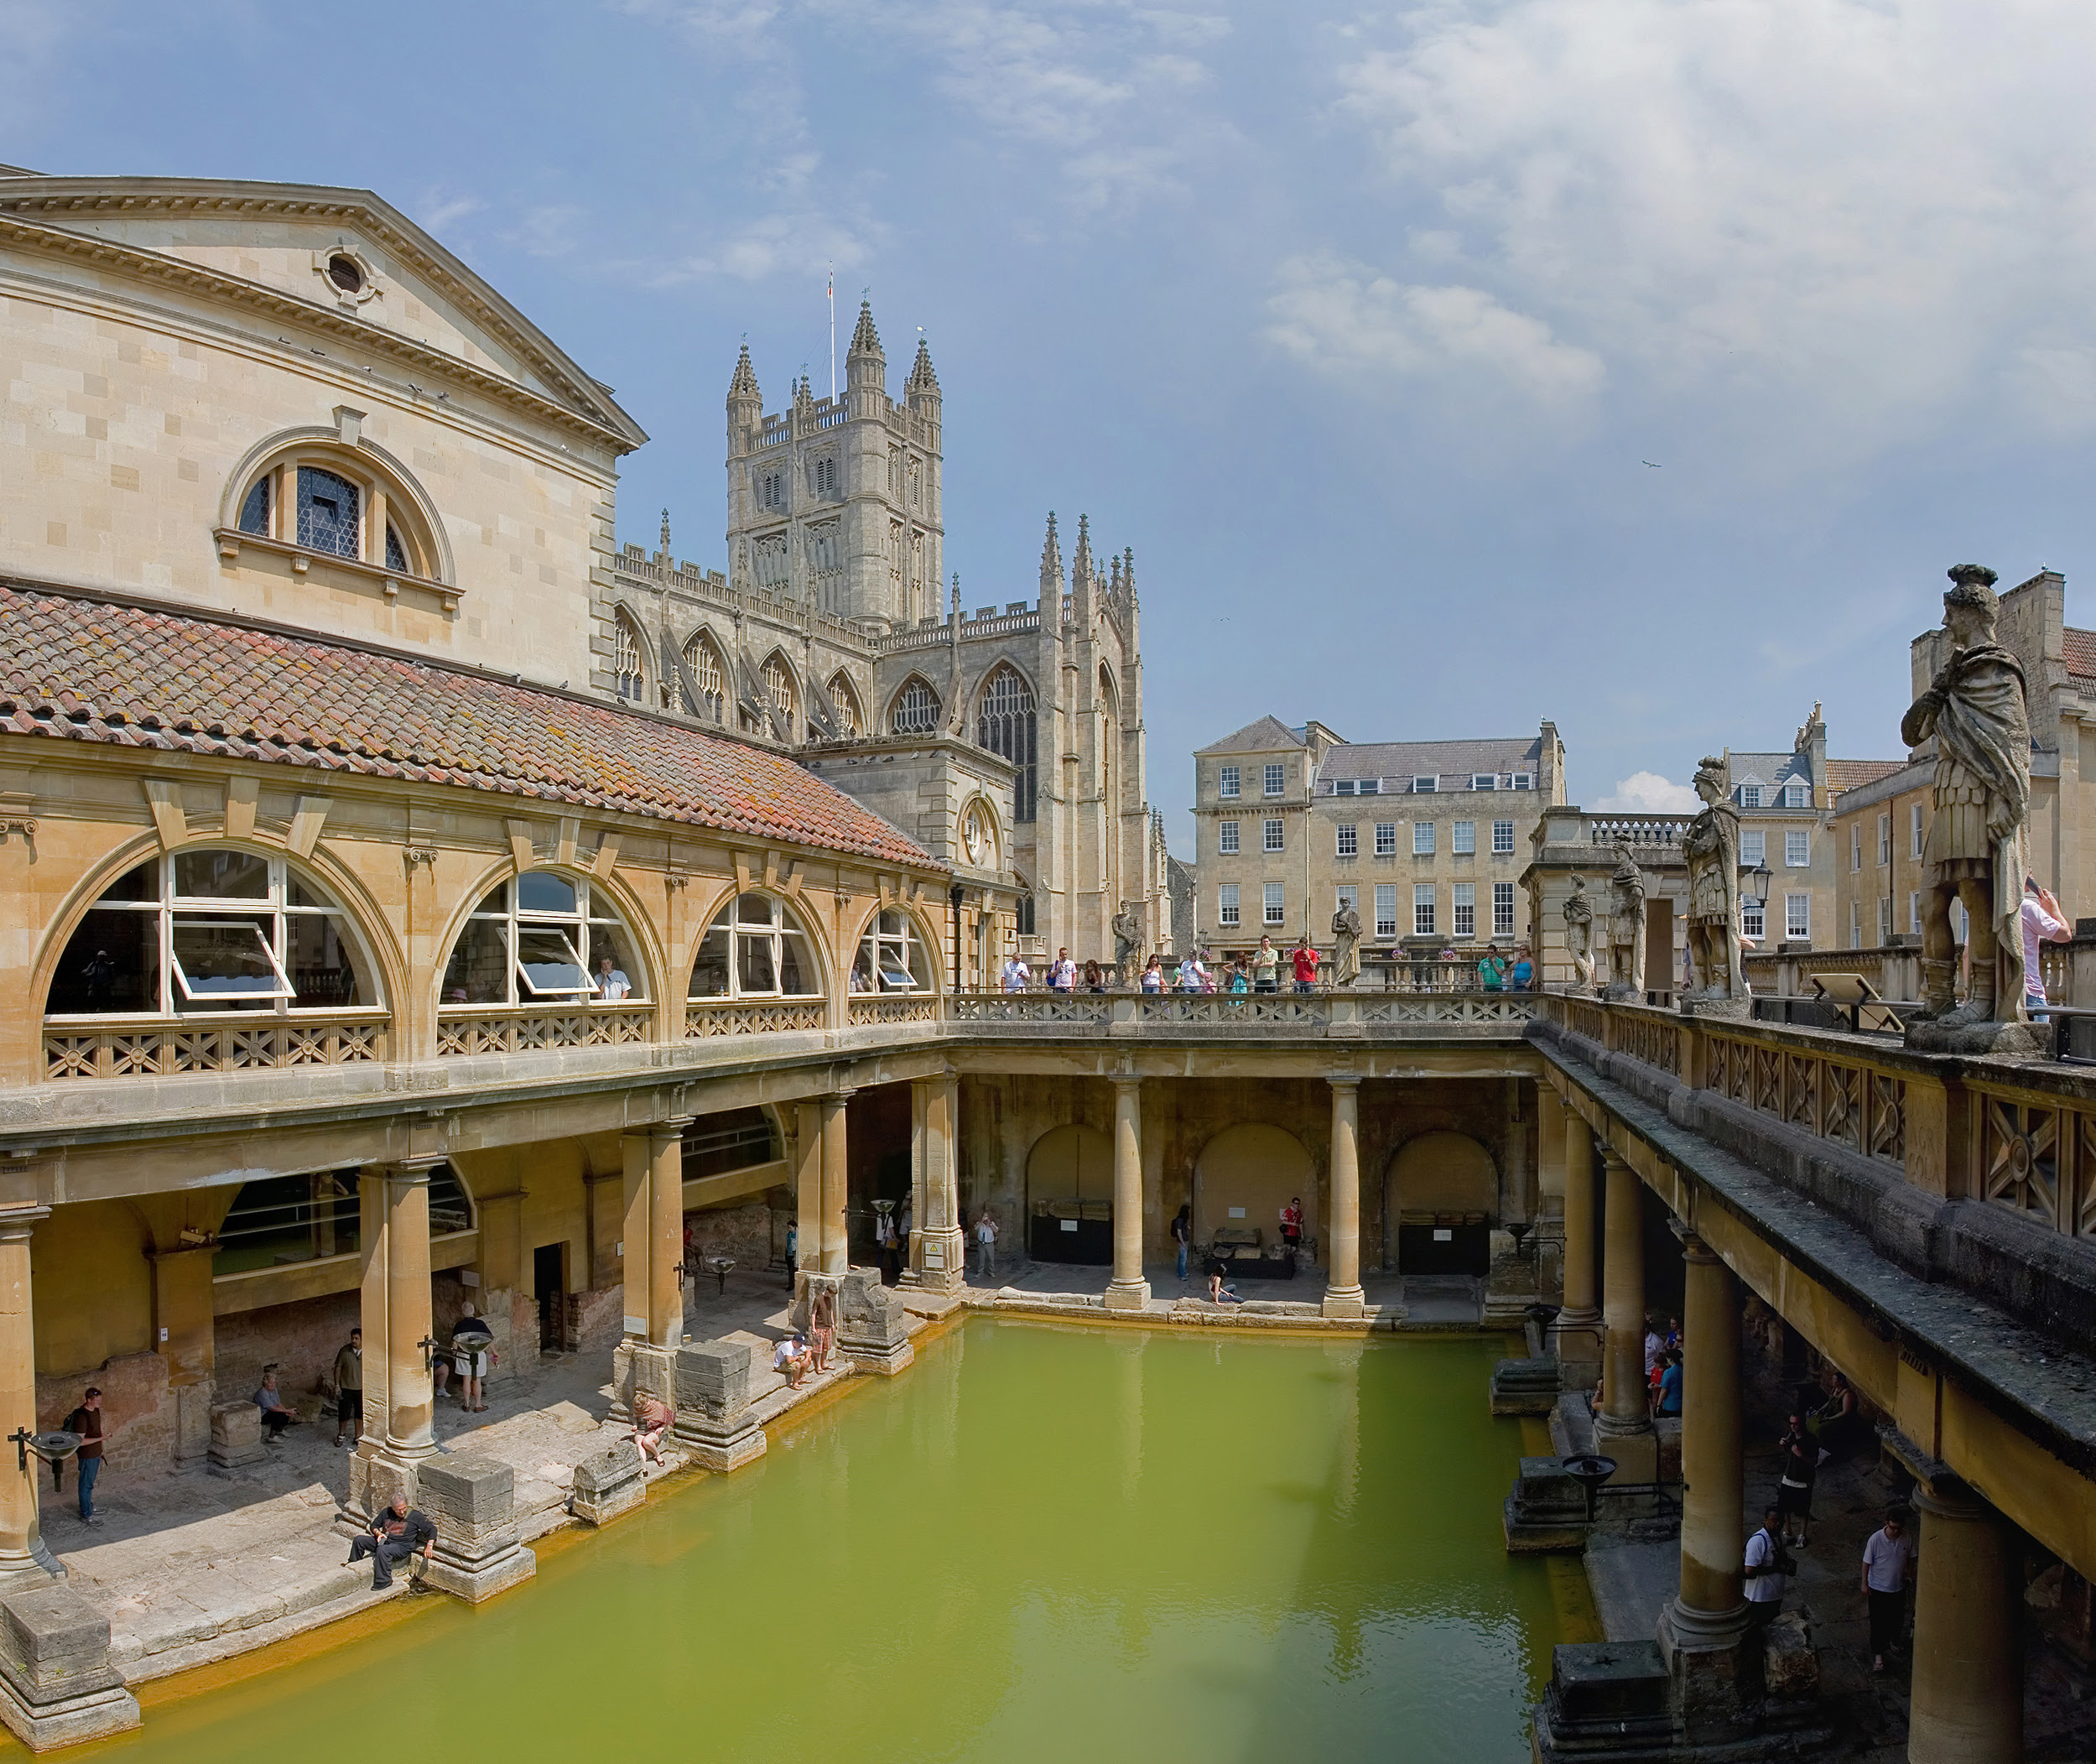 Roman_Baths_in_Bath_Spa,_England_ _July_2006_edit3